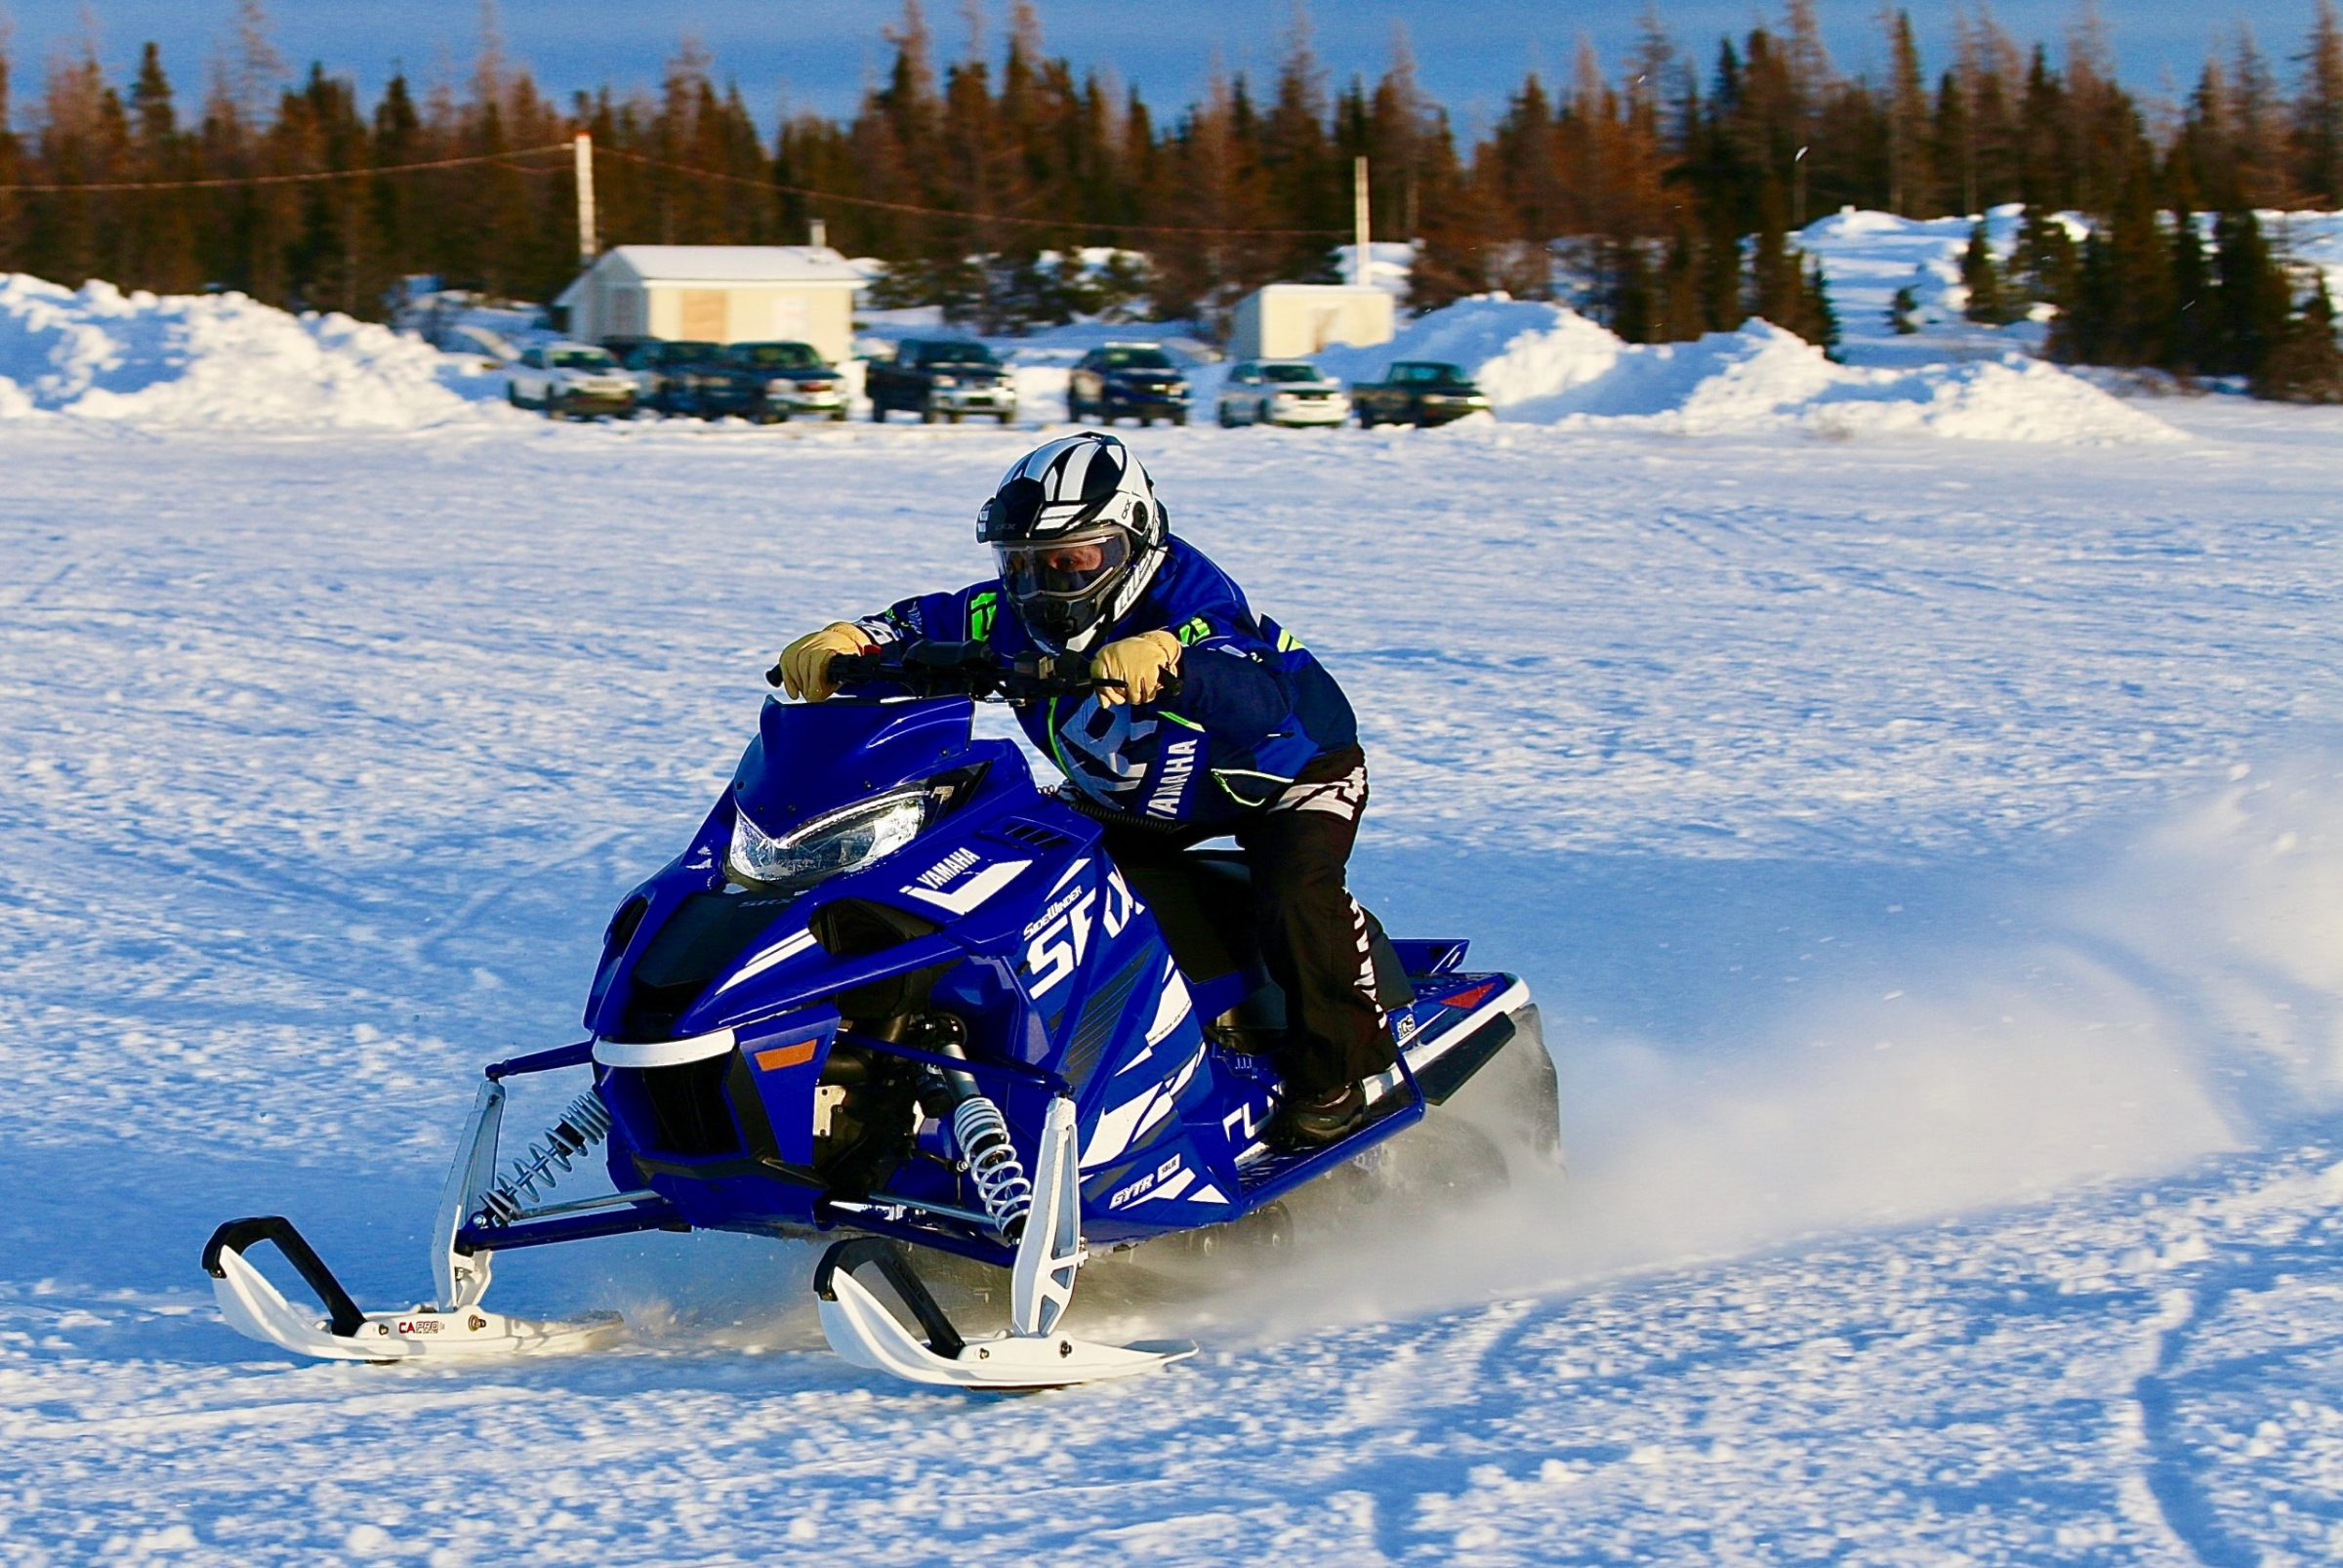 Jeanie May competes in snowmobile races held by the Kuujjuaq Sivulirtisait Youth Committee Jan. 10. May won both her division categories, in time trials and in a race against five other women. The races are held each year around a course at Stewart Lake. (Photo by Malaya Qaunirq Chapman)